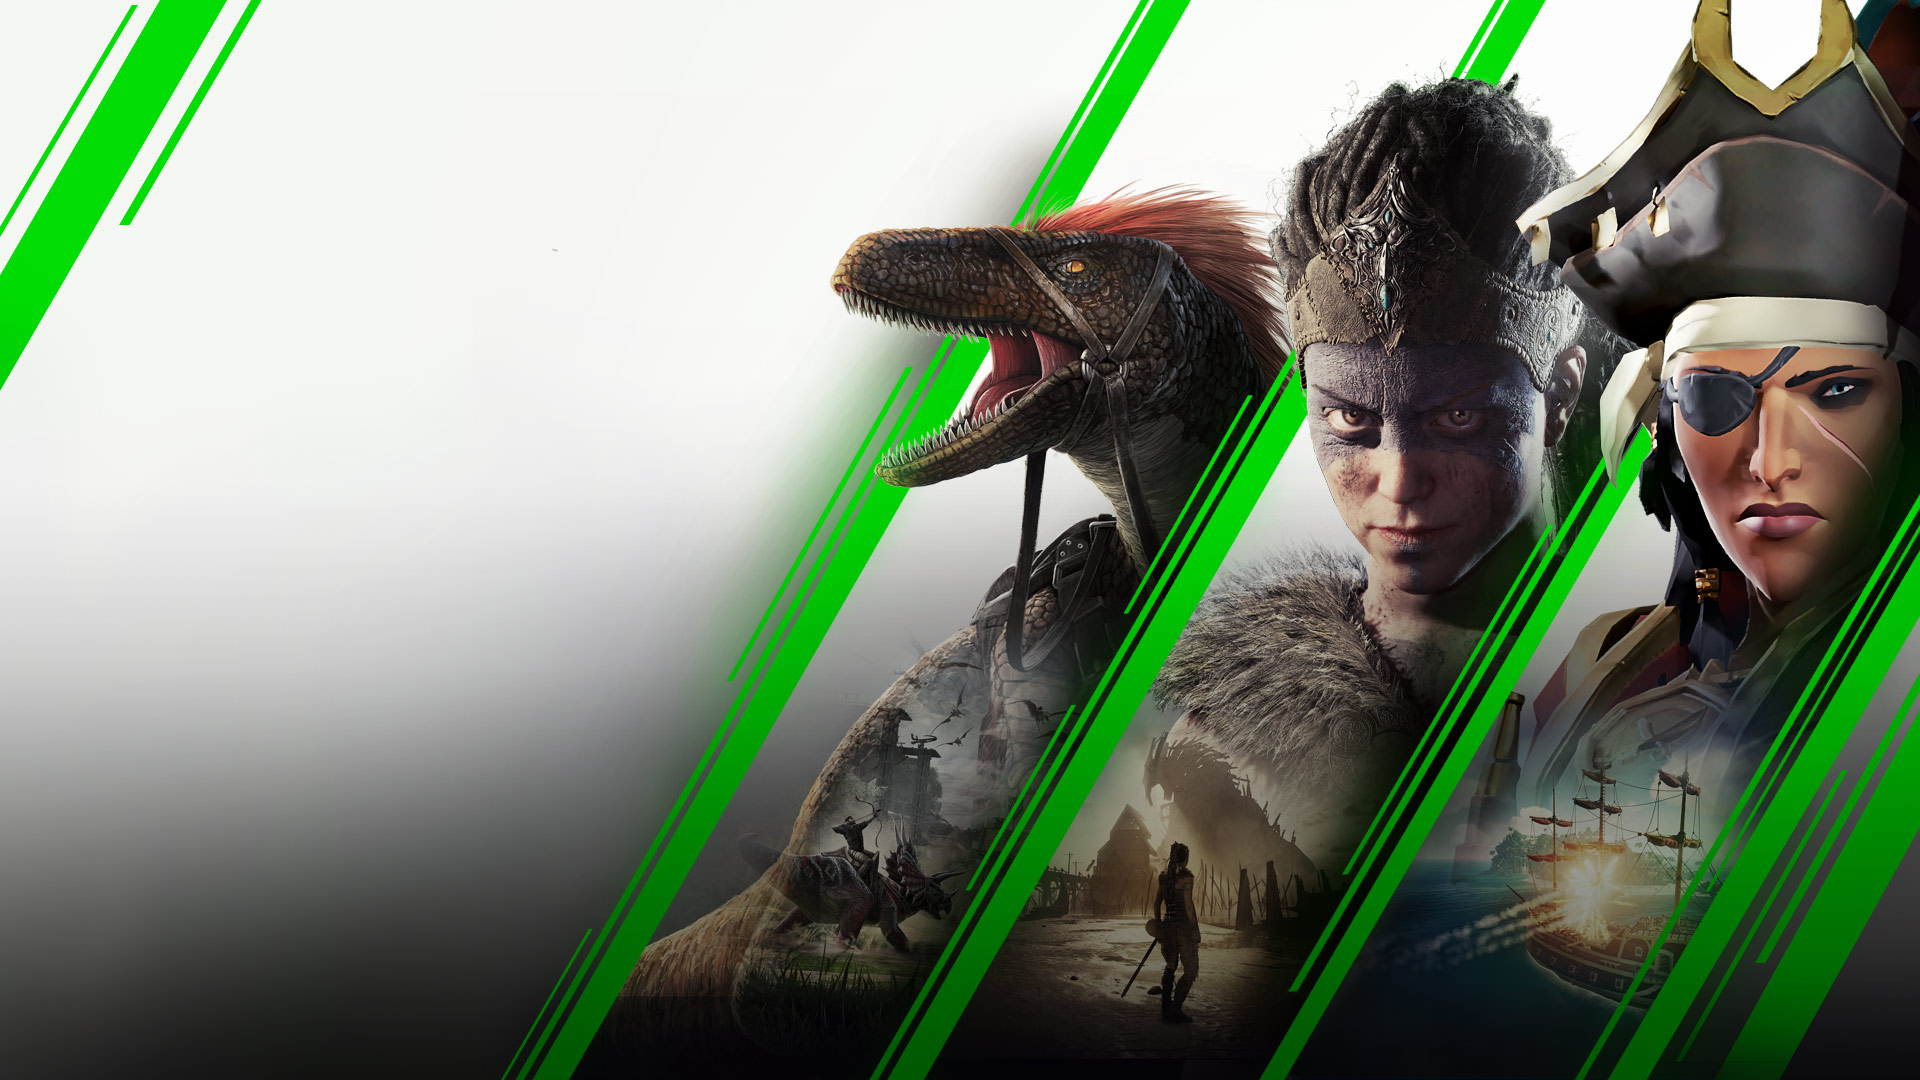 Stylised green diagonal lines separating a raptor from ARK: Survival Evolved, Senua from Hellblade: Senua's Sacrifice, and a female pirate from Sea of Thieves.